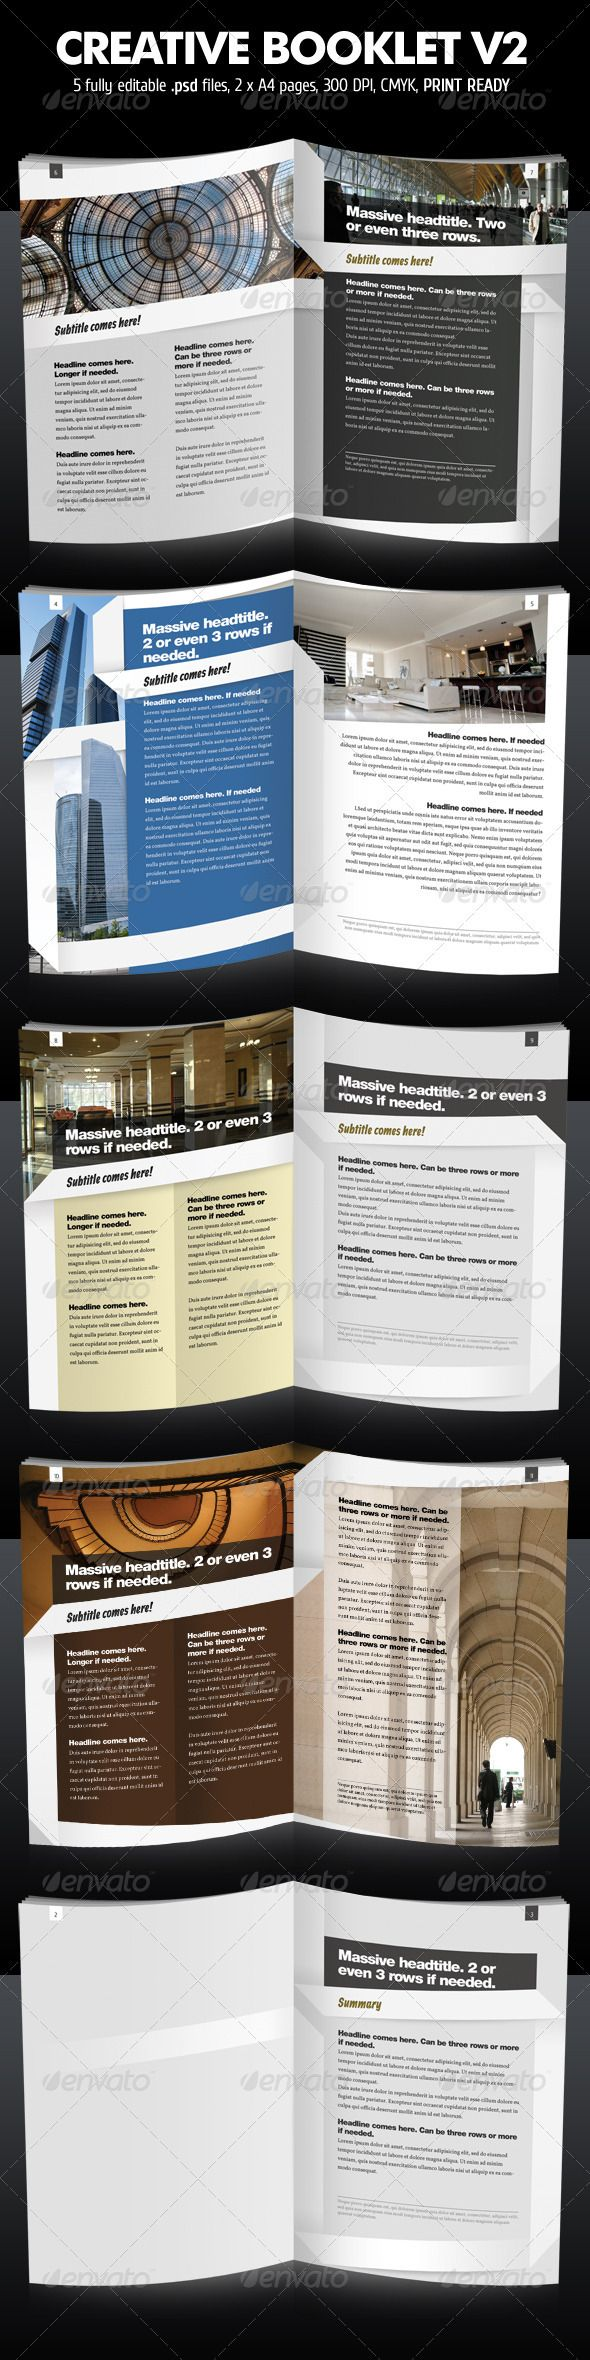 Creative Booklet / Brochure V2 - Corporate Brochure Template PSD. Download here: http://graphicriver.net/item/creative-booklet-brochure-v2/397269?s_rank=728&ref=yinkira